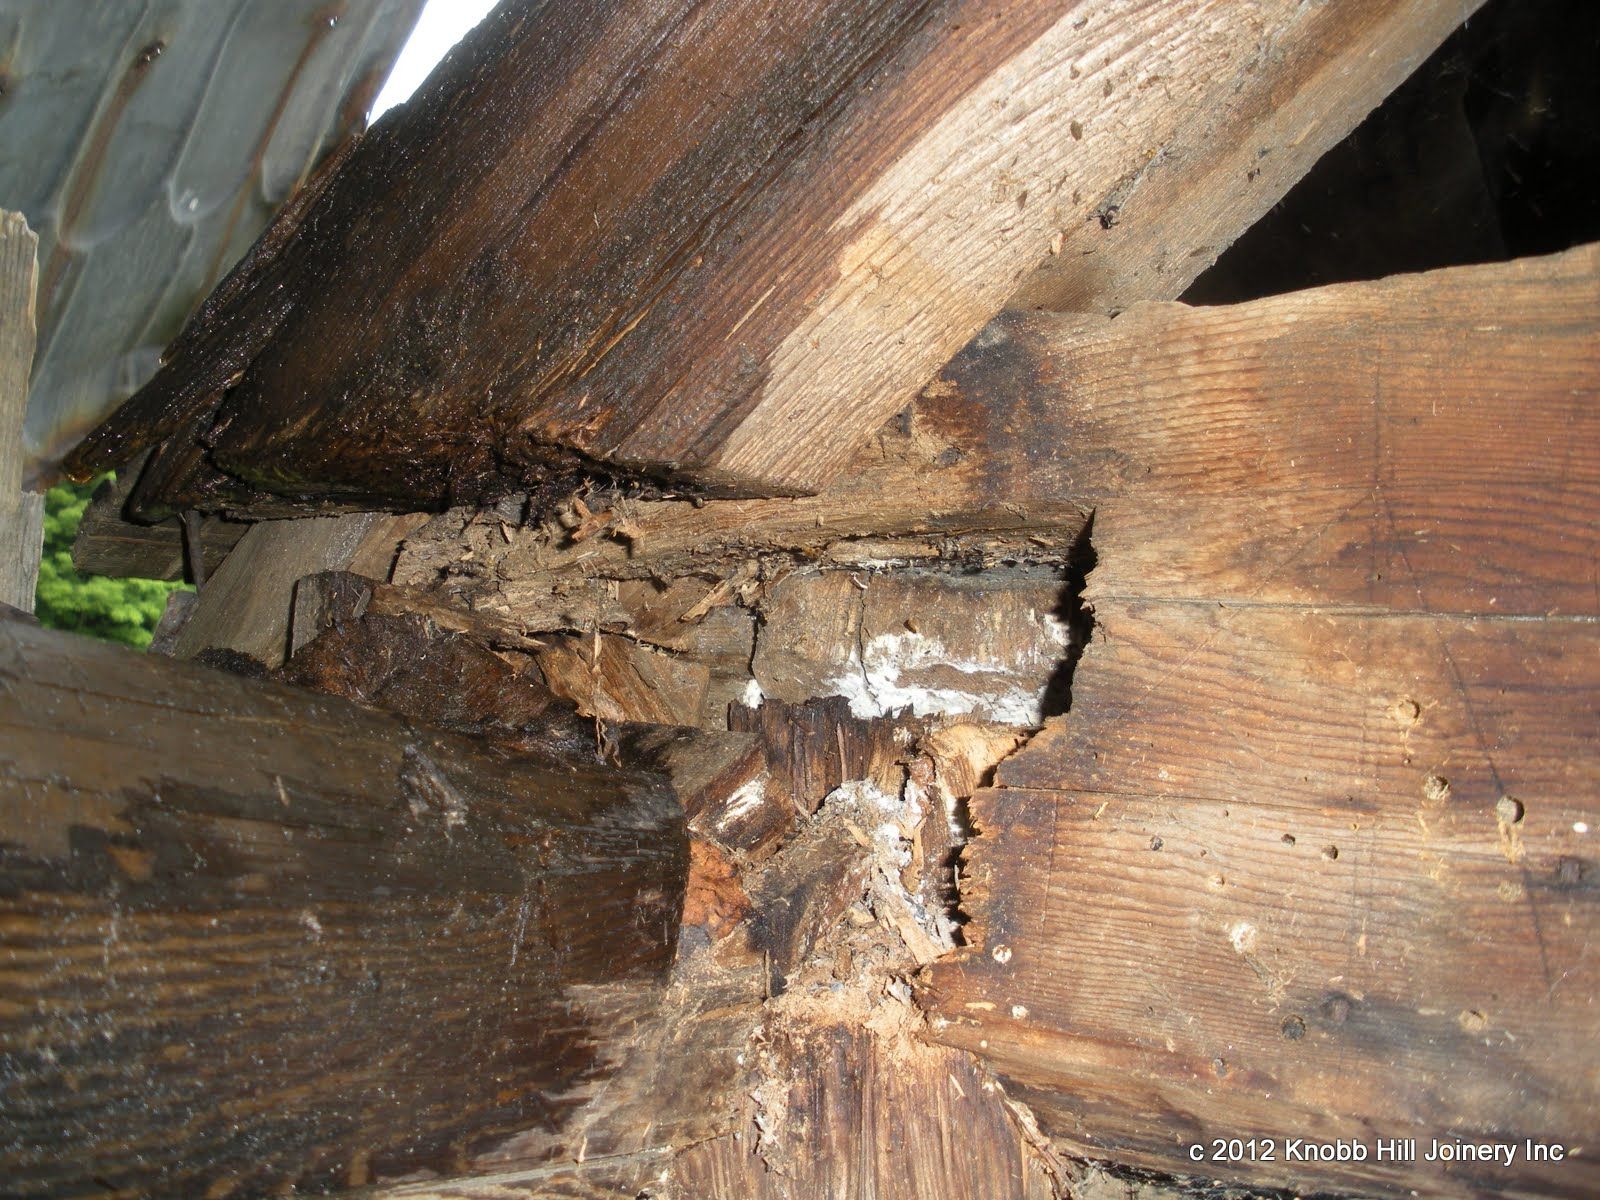 Detail of the damage to the plate and tie beam.